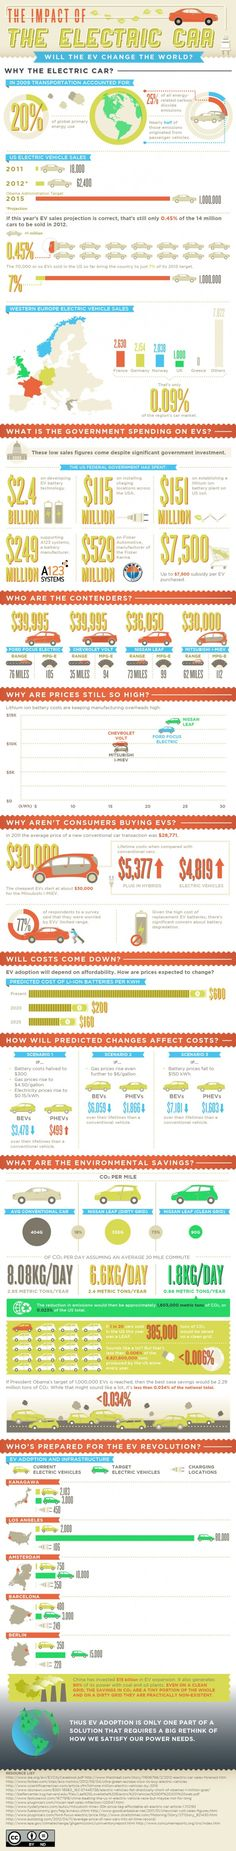 #Car #Infographic Impact of Electric Car - ComplianceandSafety.com